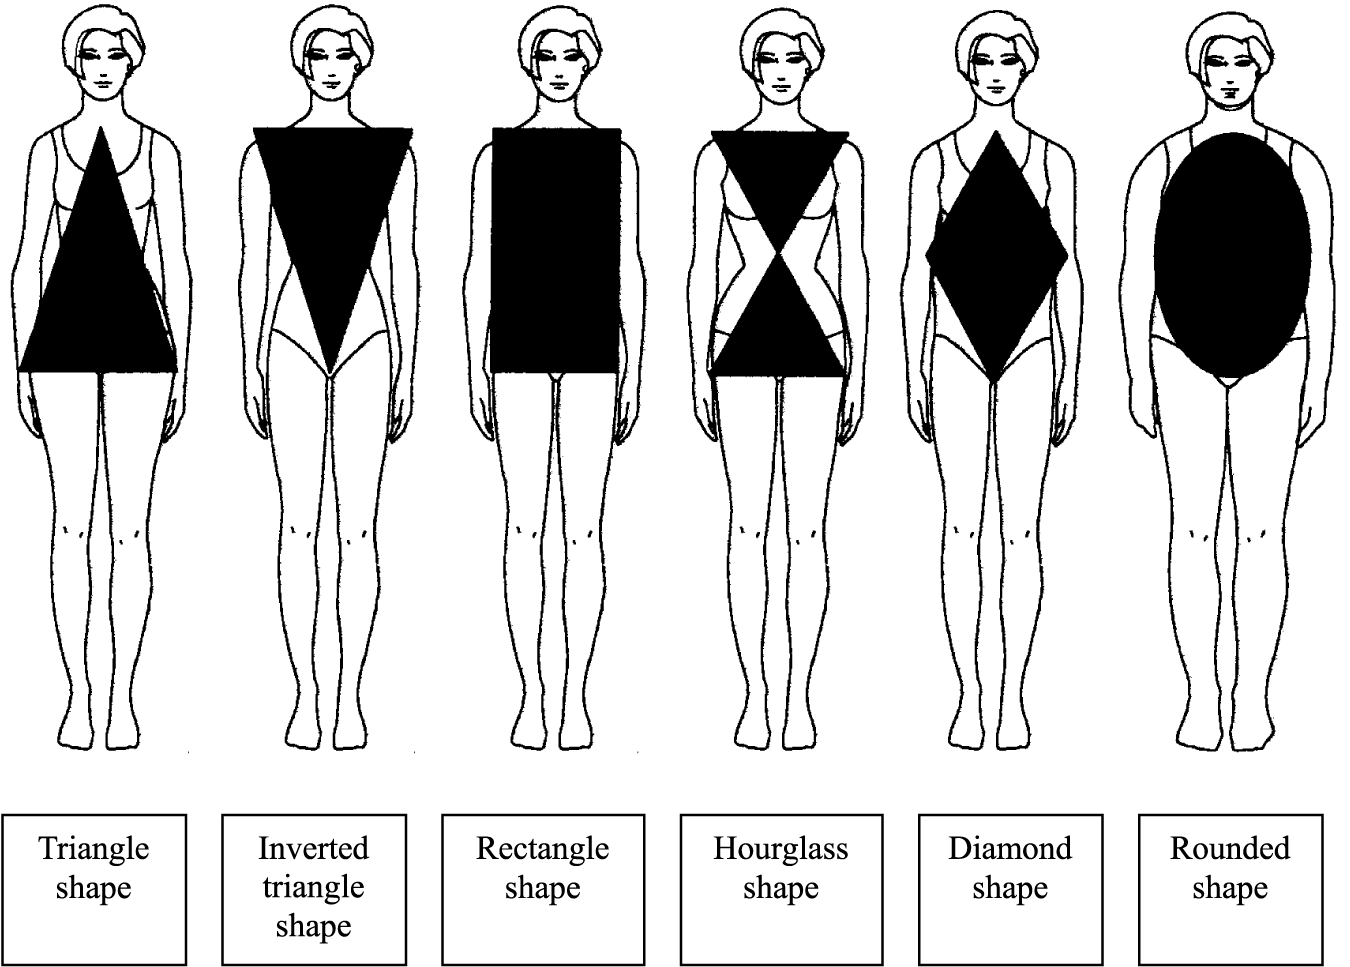 WELCOME TO MIGLIORE STITCHES : HOW TO DETERMINE YOUR BODY SHAPE